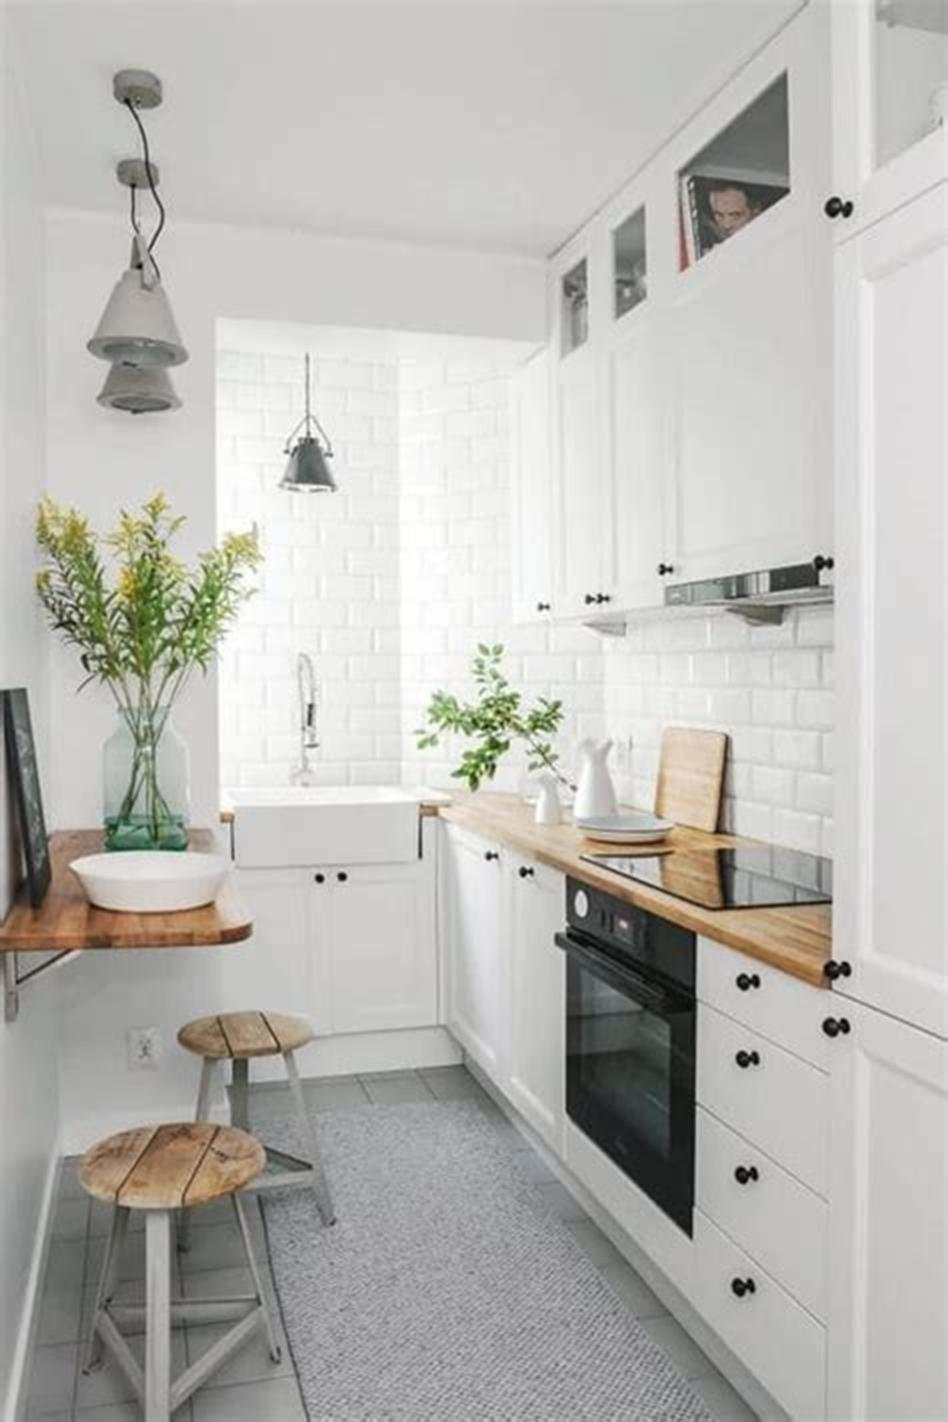 43 Amazing Kitchen Remodeling Ideas for Small Kitchens 2019 36